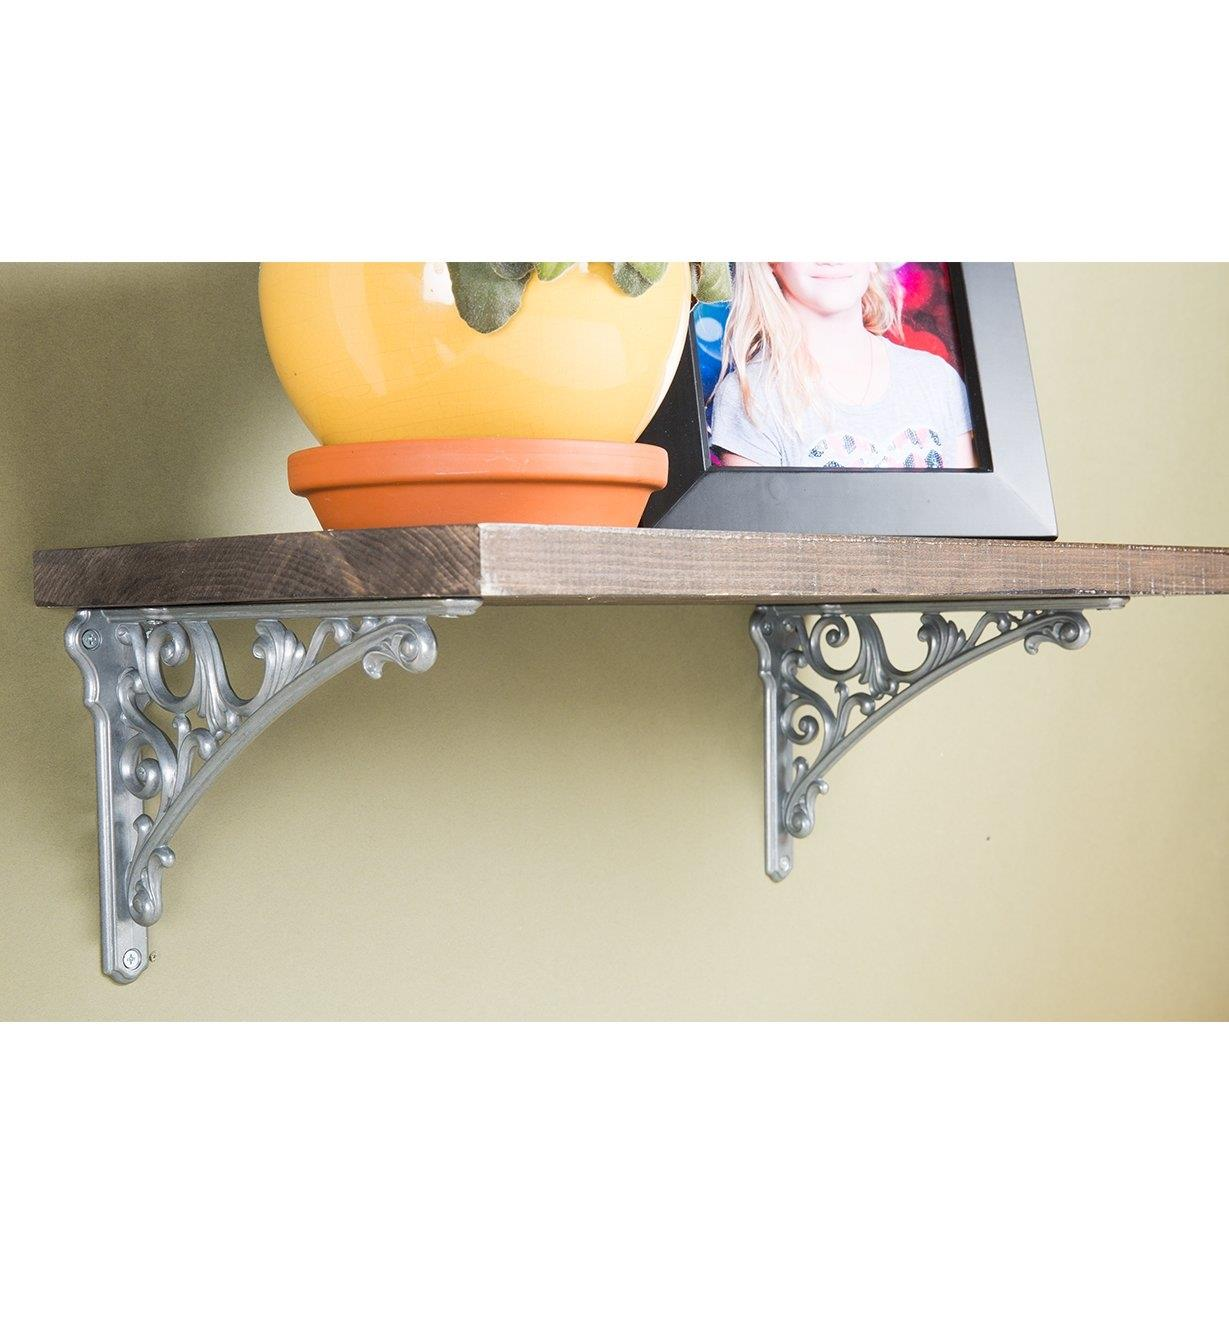 Two Classico Tumbled Nickel Shelf Brackets mounted to a shelf on a wall